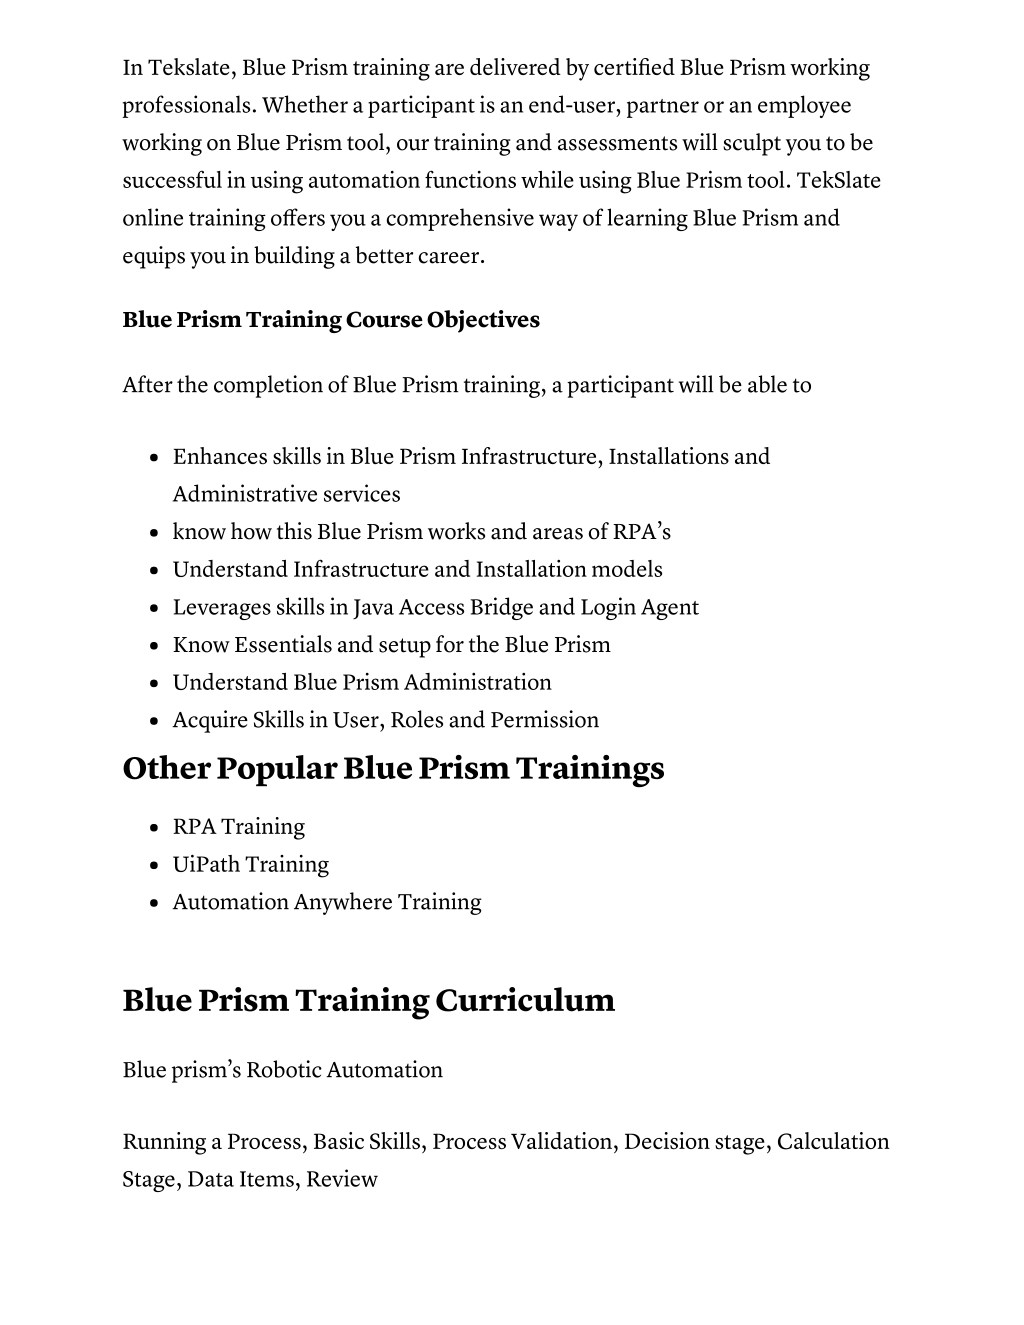 PPT - Blue Prism Online Training with Course Certification